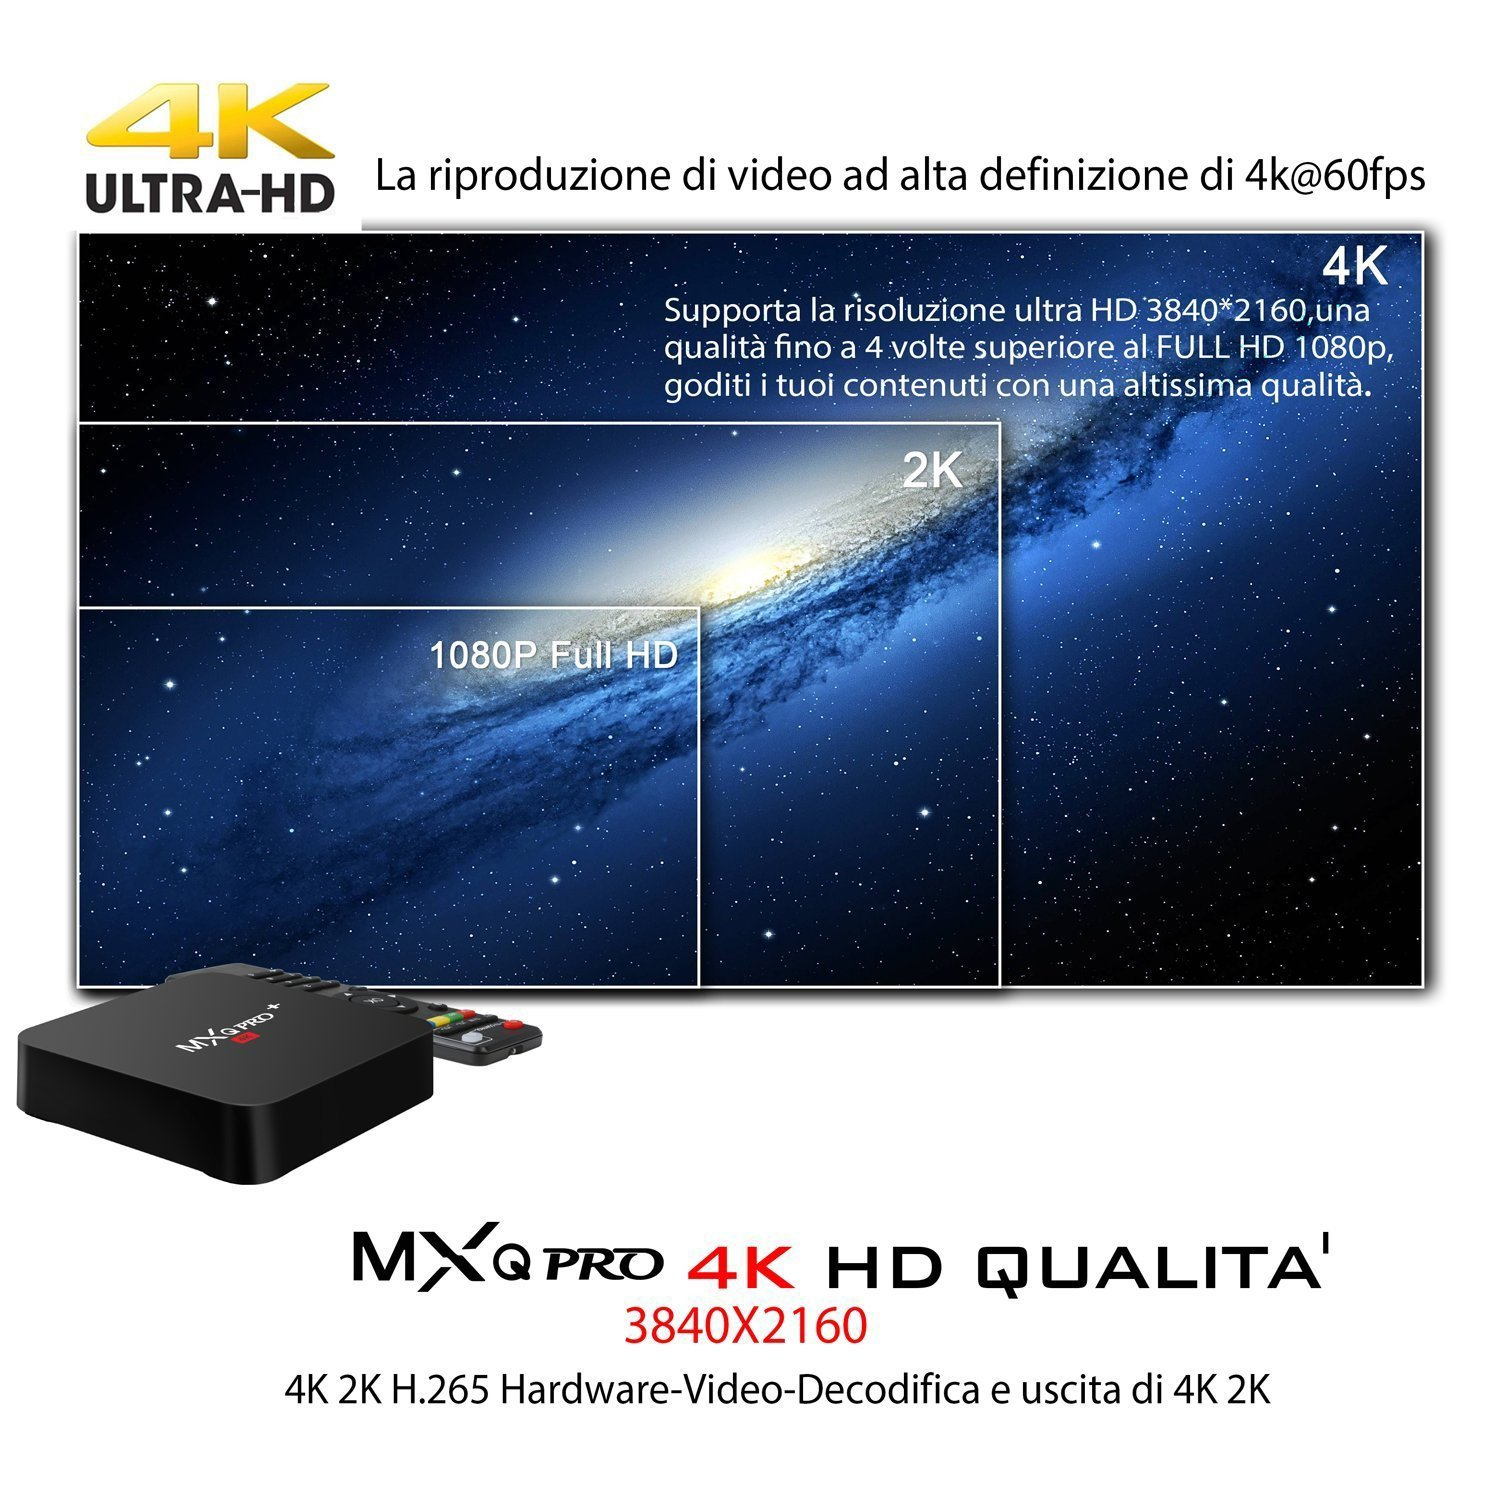 Amazon.com: MXQ PRO+ WIFI HDMI Player 4K Quad Core S905X HD Android 7.1.2 Smart TV BOX 2GB RAM+16GROM: Electronics